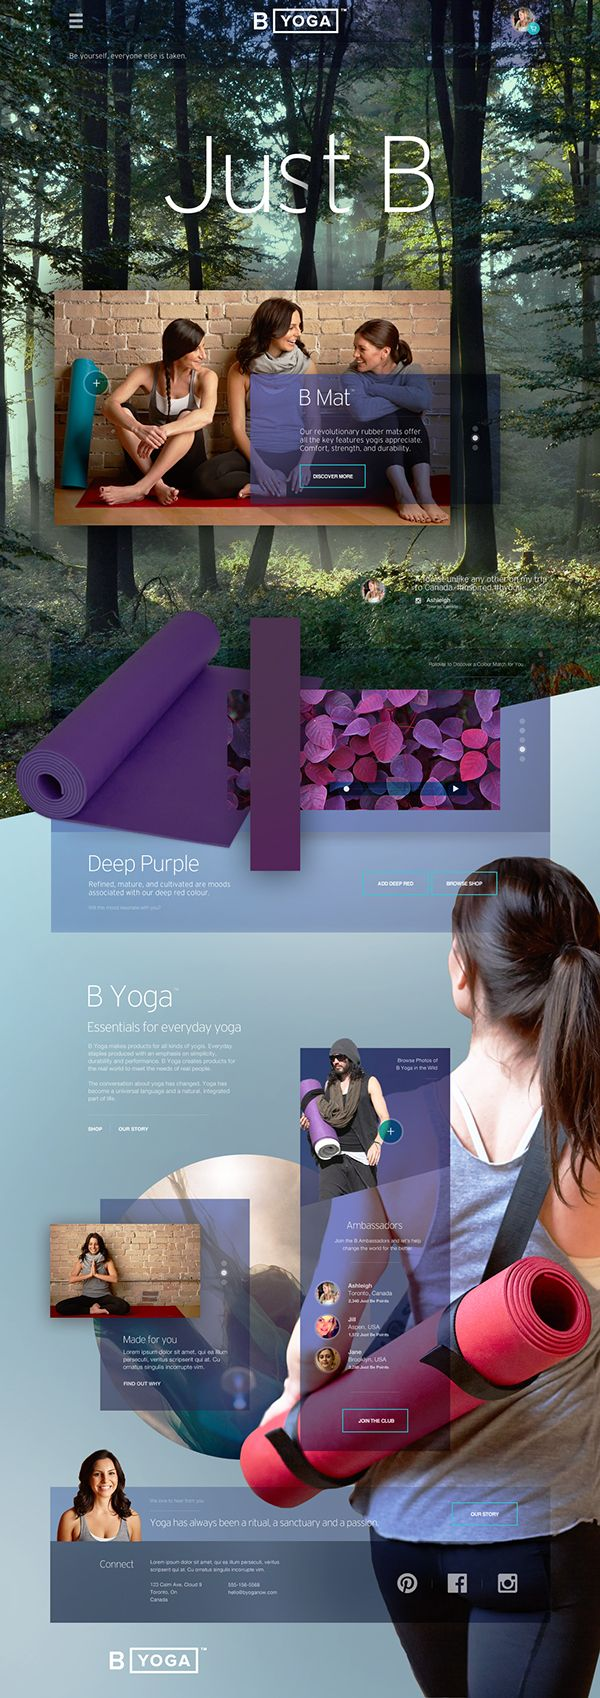 B Yoga Website on Behance : jeu de transparence et de superposition.